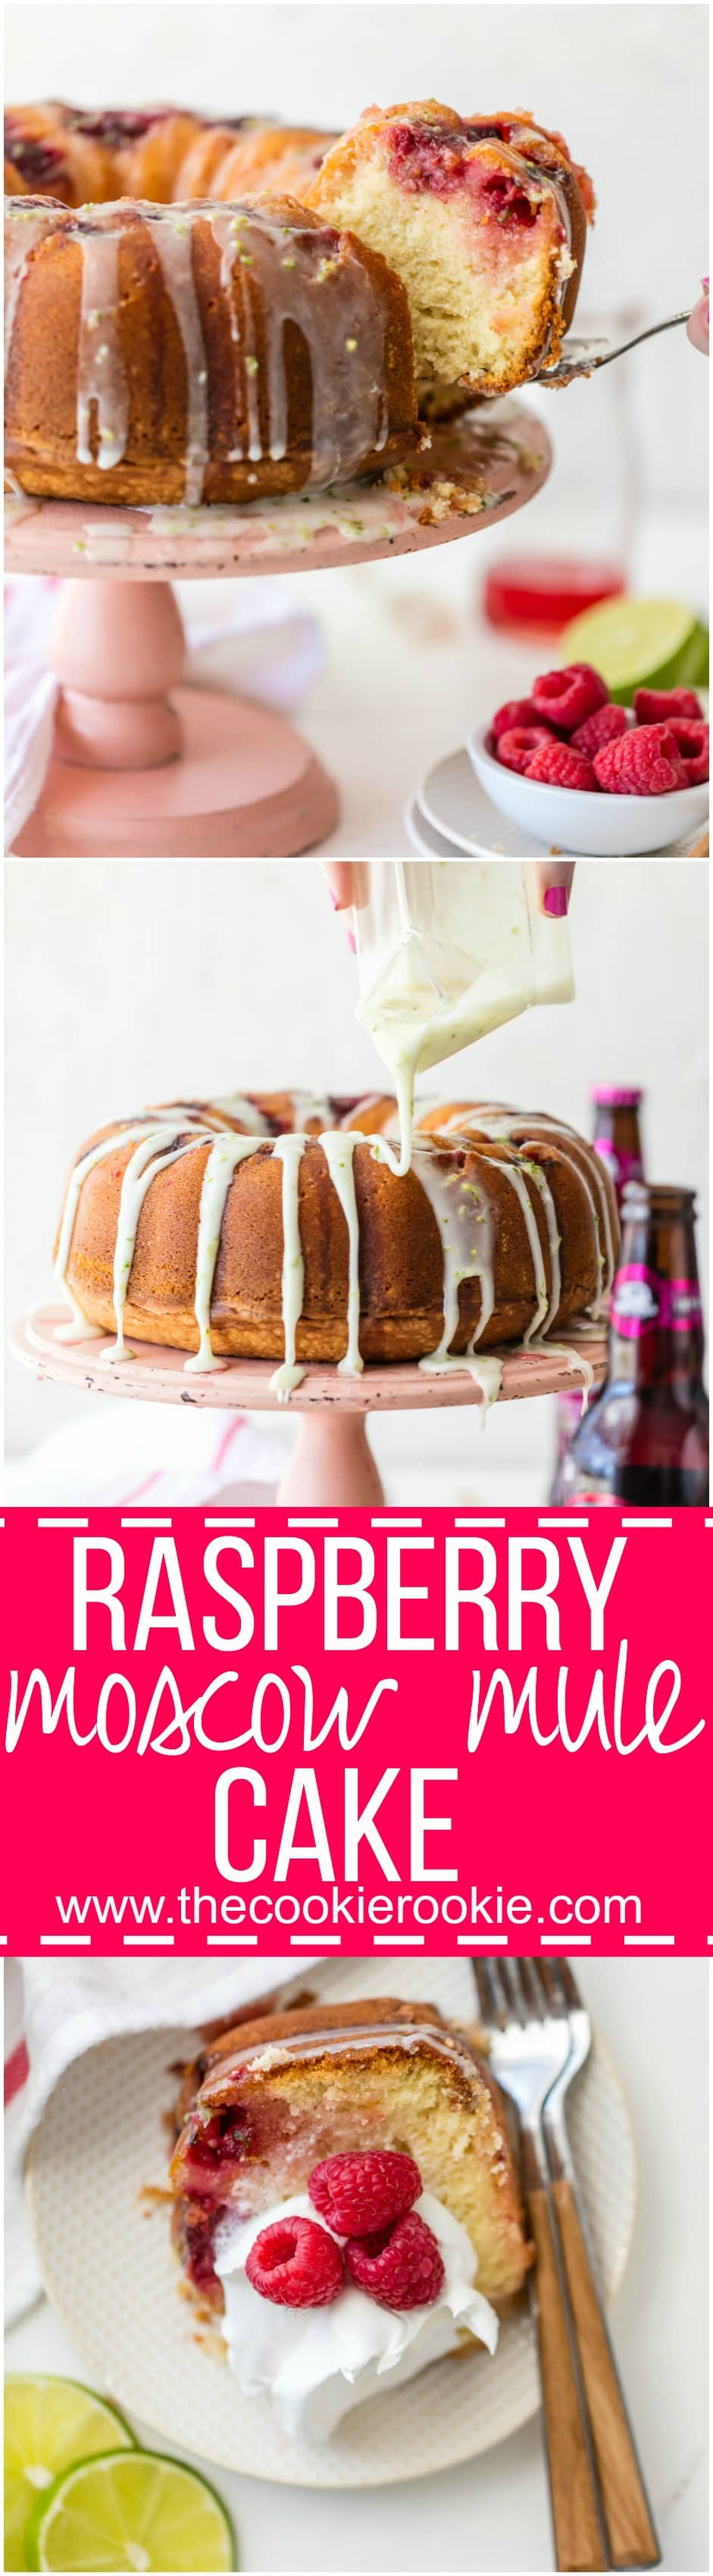 This RASPBERRY MOSCOW MULE CAKE makes life a little bit sweeter! Made with fresh raspberries, ginger beer, raspberry moscow mule simple syrup, and fresh lime glaze! YUM!